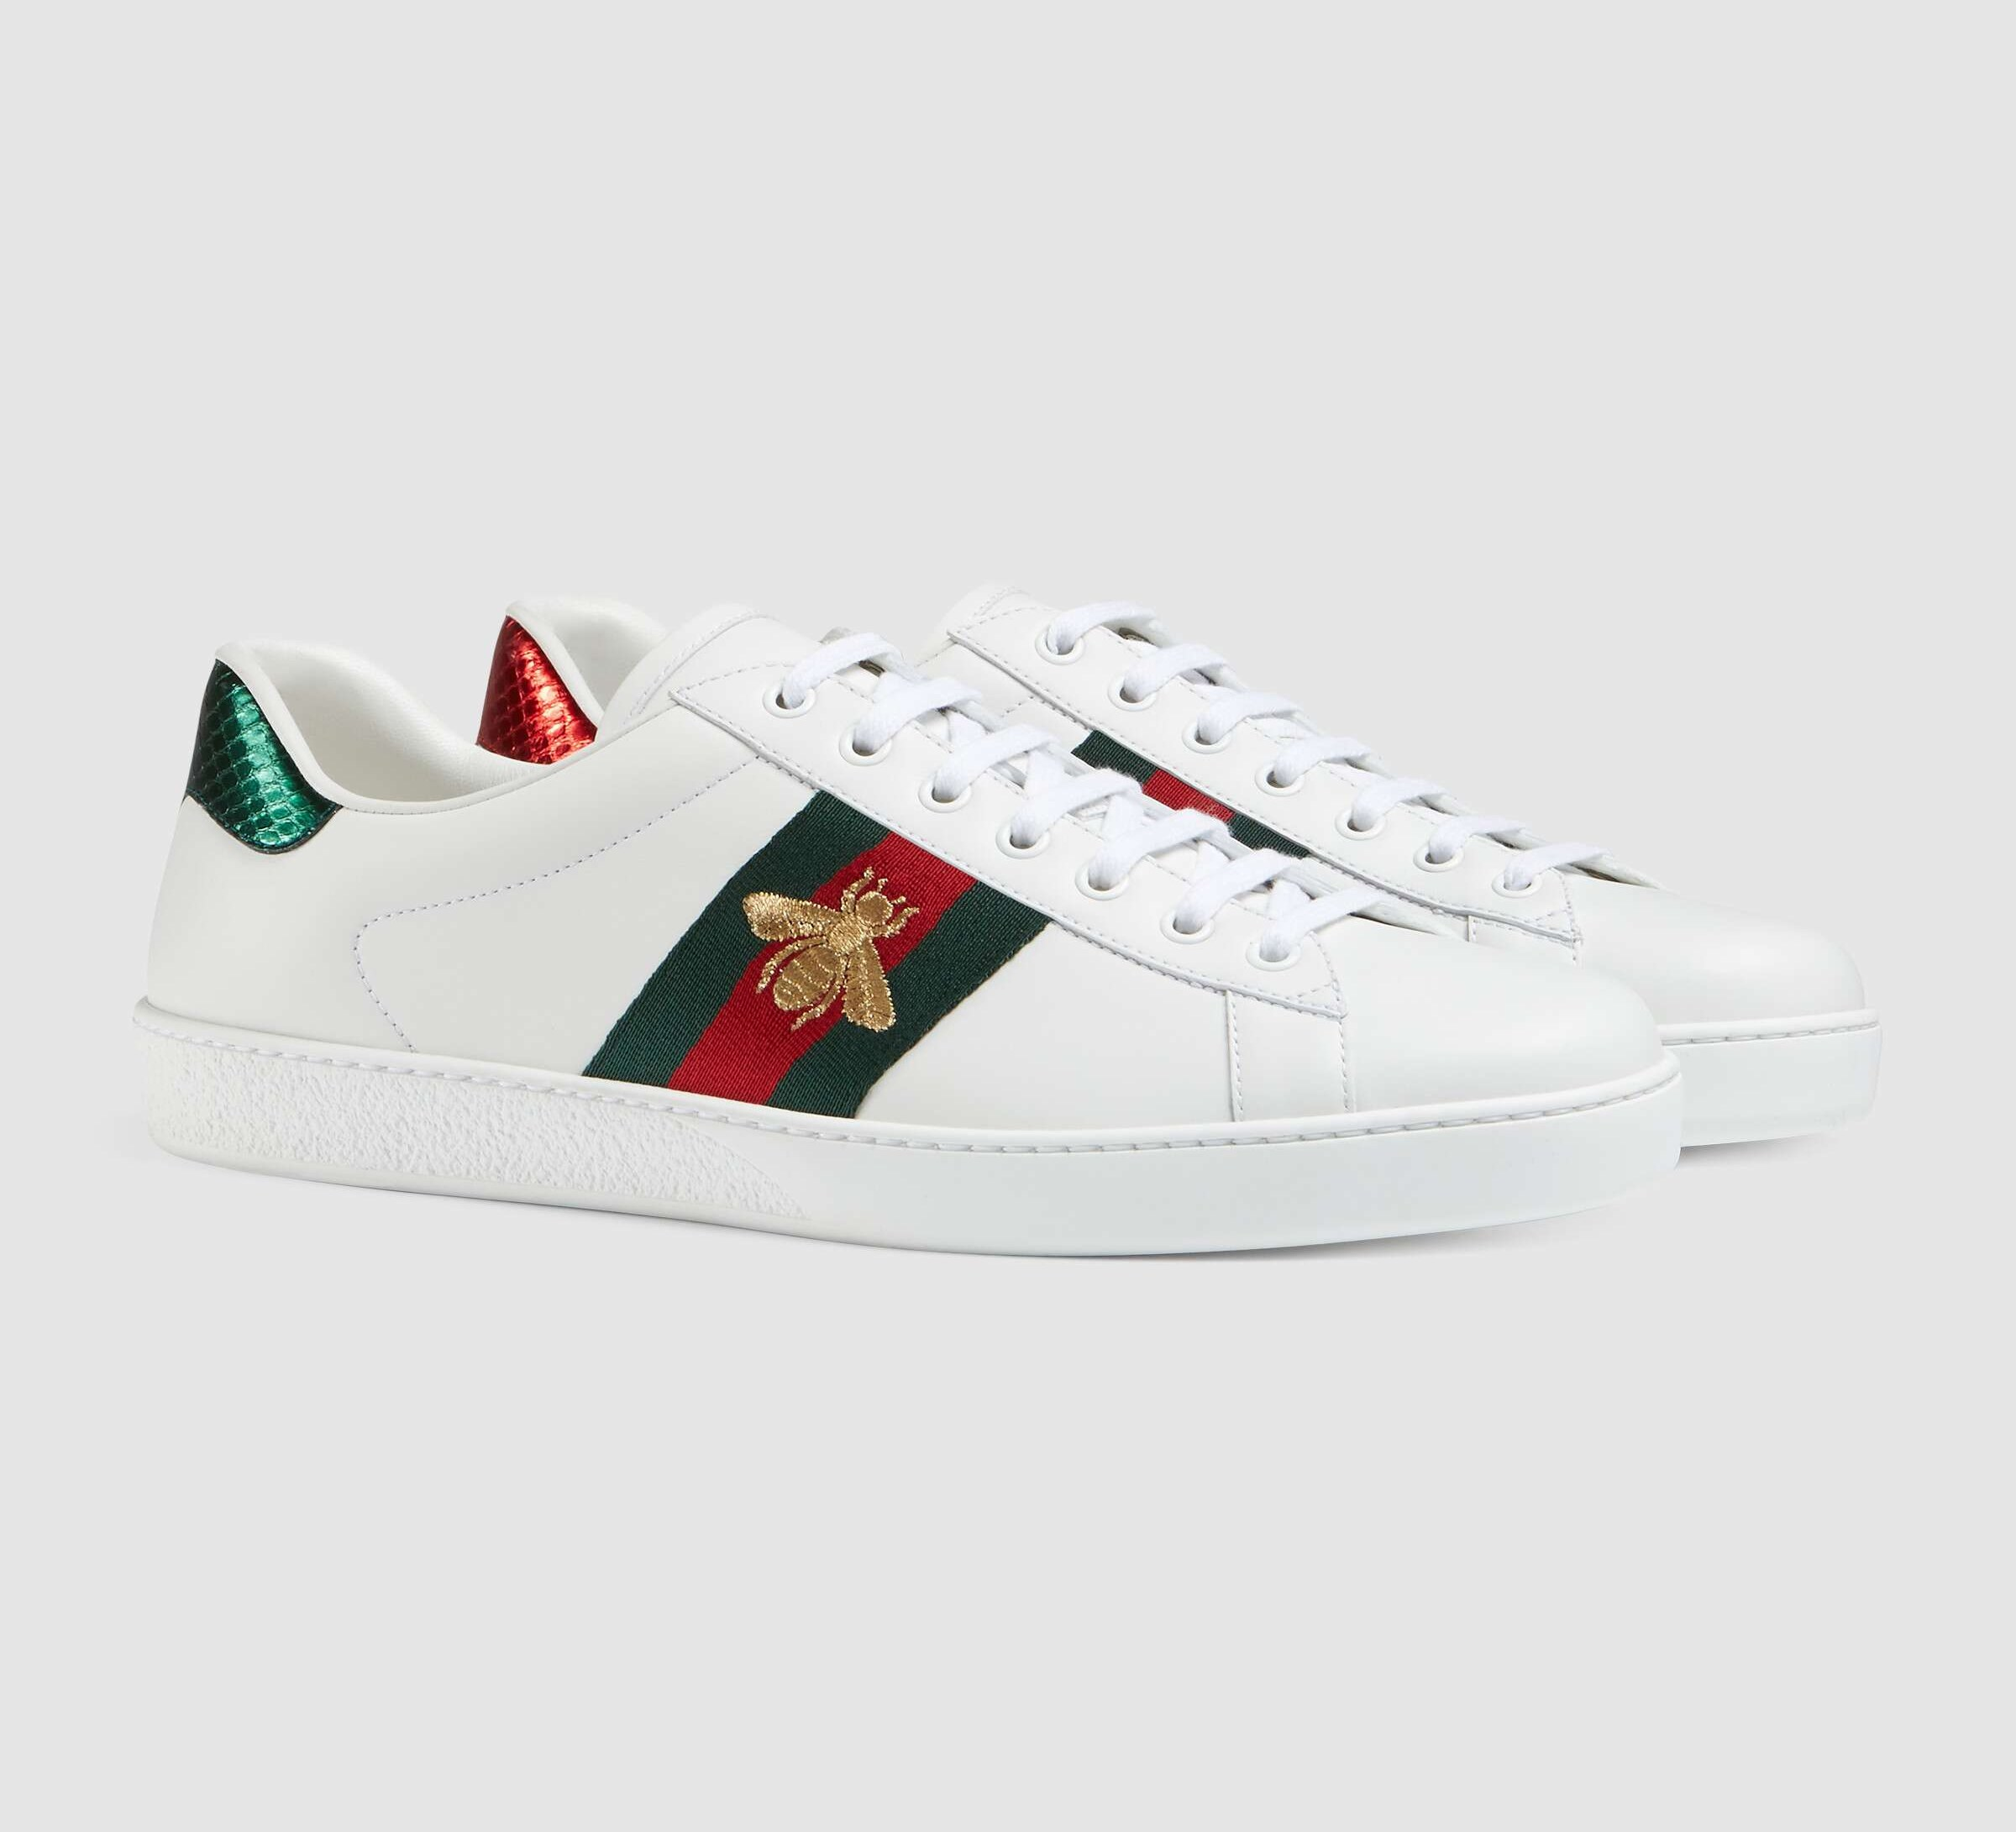 Gucci Ace Embroidered Sneaker 429446 White